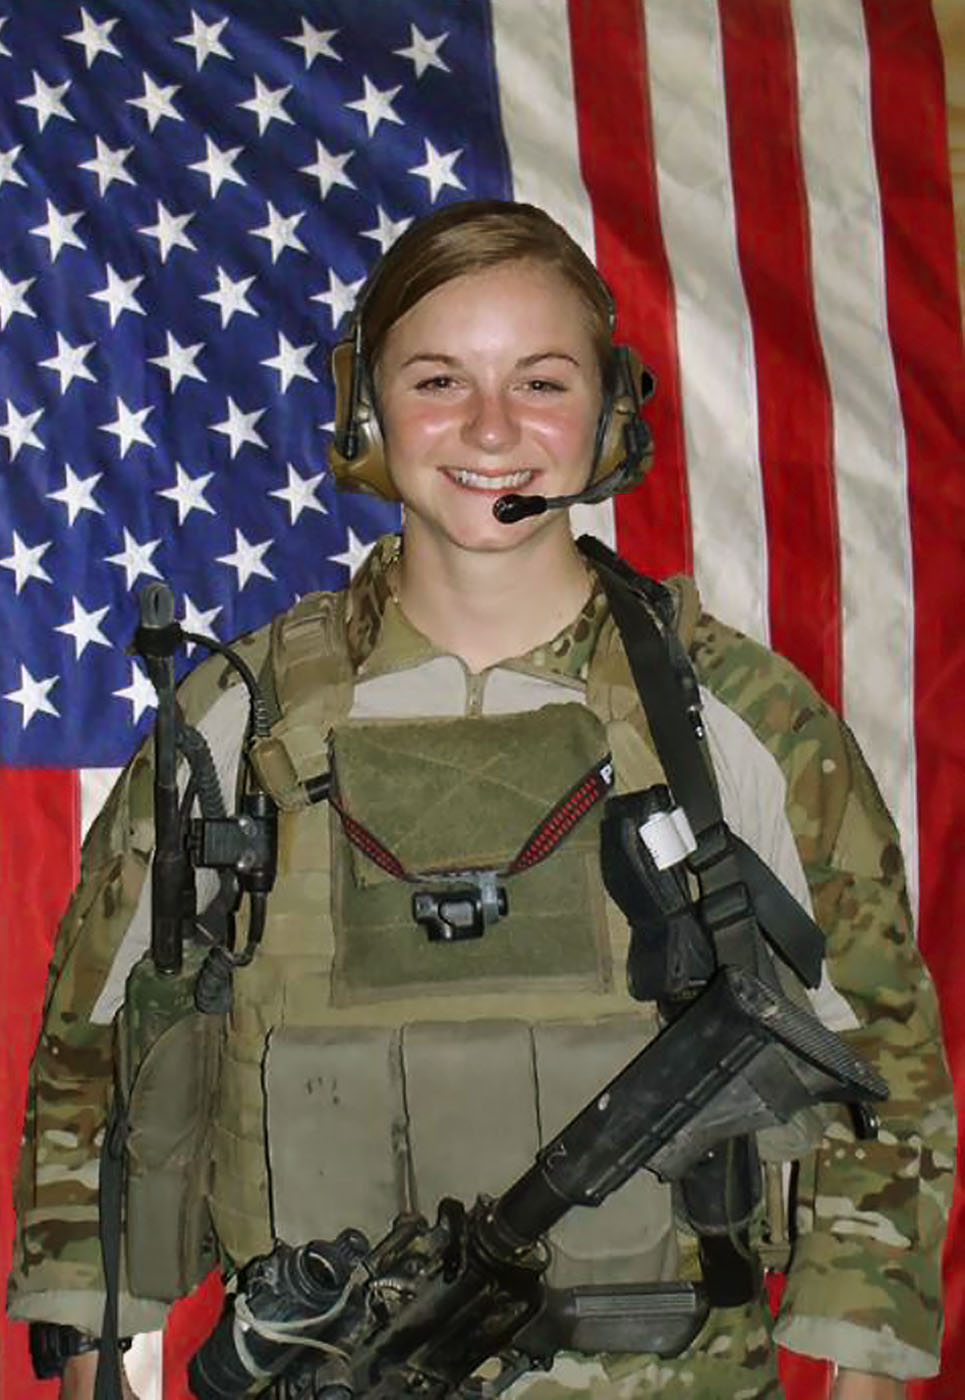 U.S. Army First Lieutenant Ashley White, 24, of Alliance, Ohio, assigned to the 230th Brigade Support Battalion, 30th Heavy Brigade Combat Team, North Carolina National Guard, based in Goldsboro, North Carolina, died on October 22, 2011 in Kandahar province, Afghanistan, from wounds suffered when insurgents attacked her unit with an improvised explosive device. She is survived by her husband Captain Jason Stumpf, her parents Robert and Deborah, brother Josh, and sister Brittney.